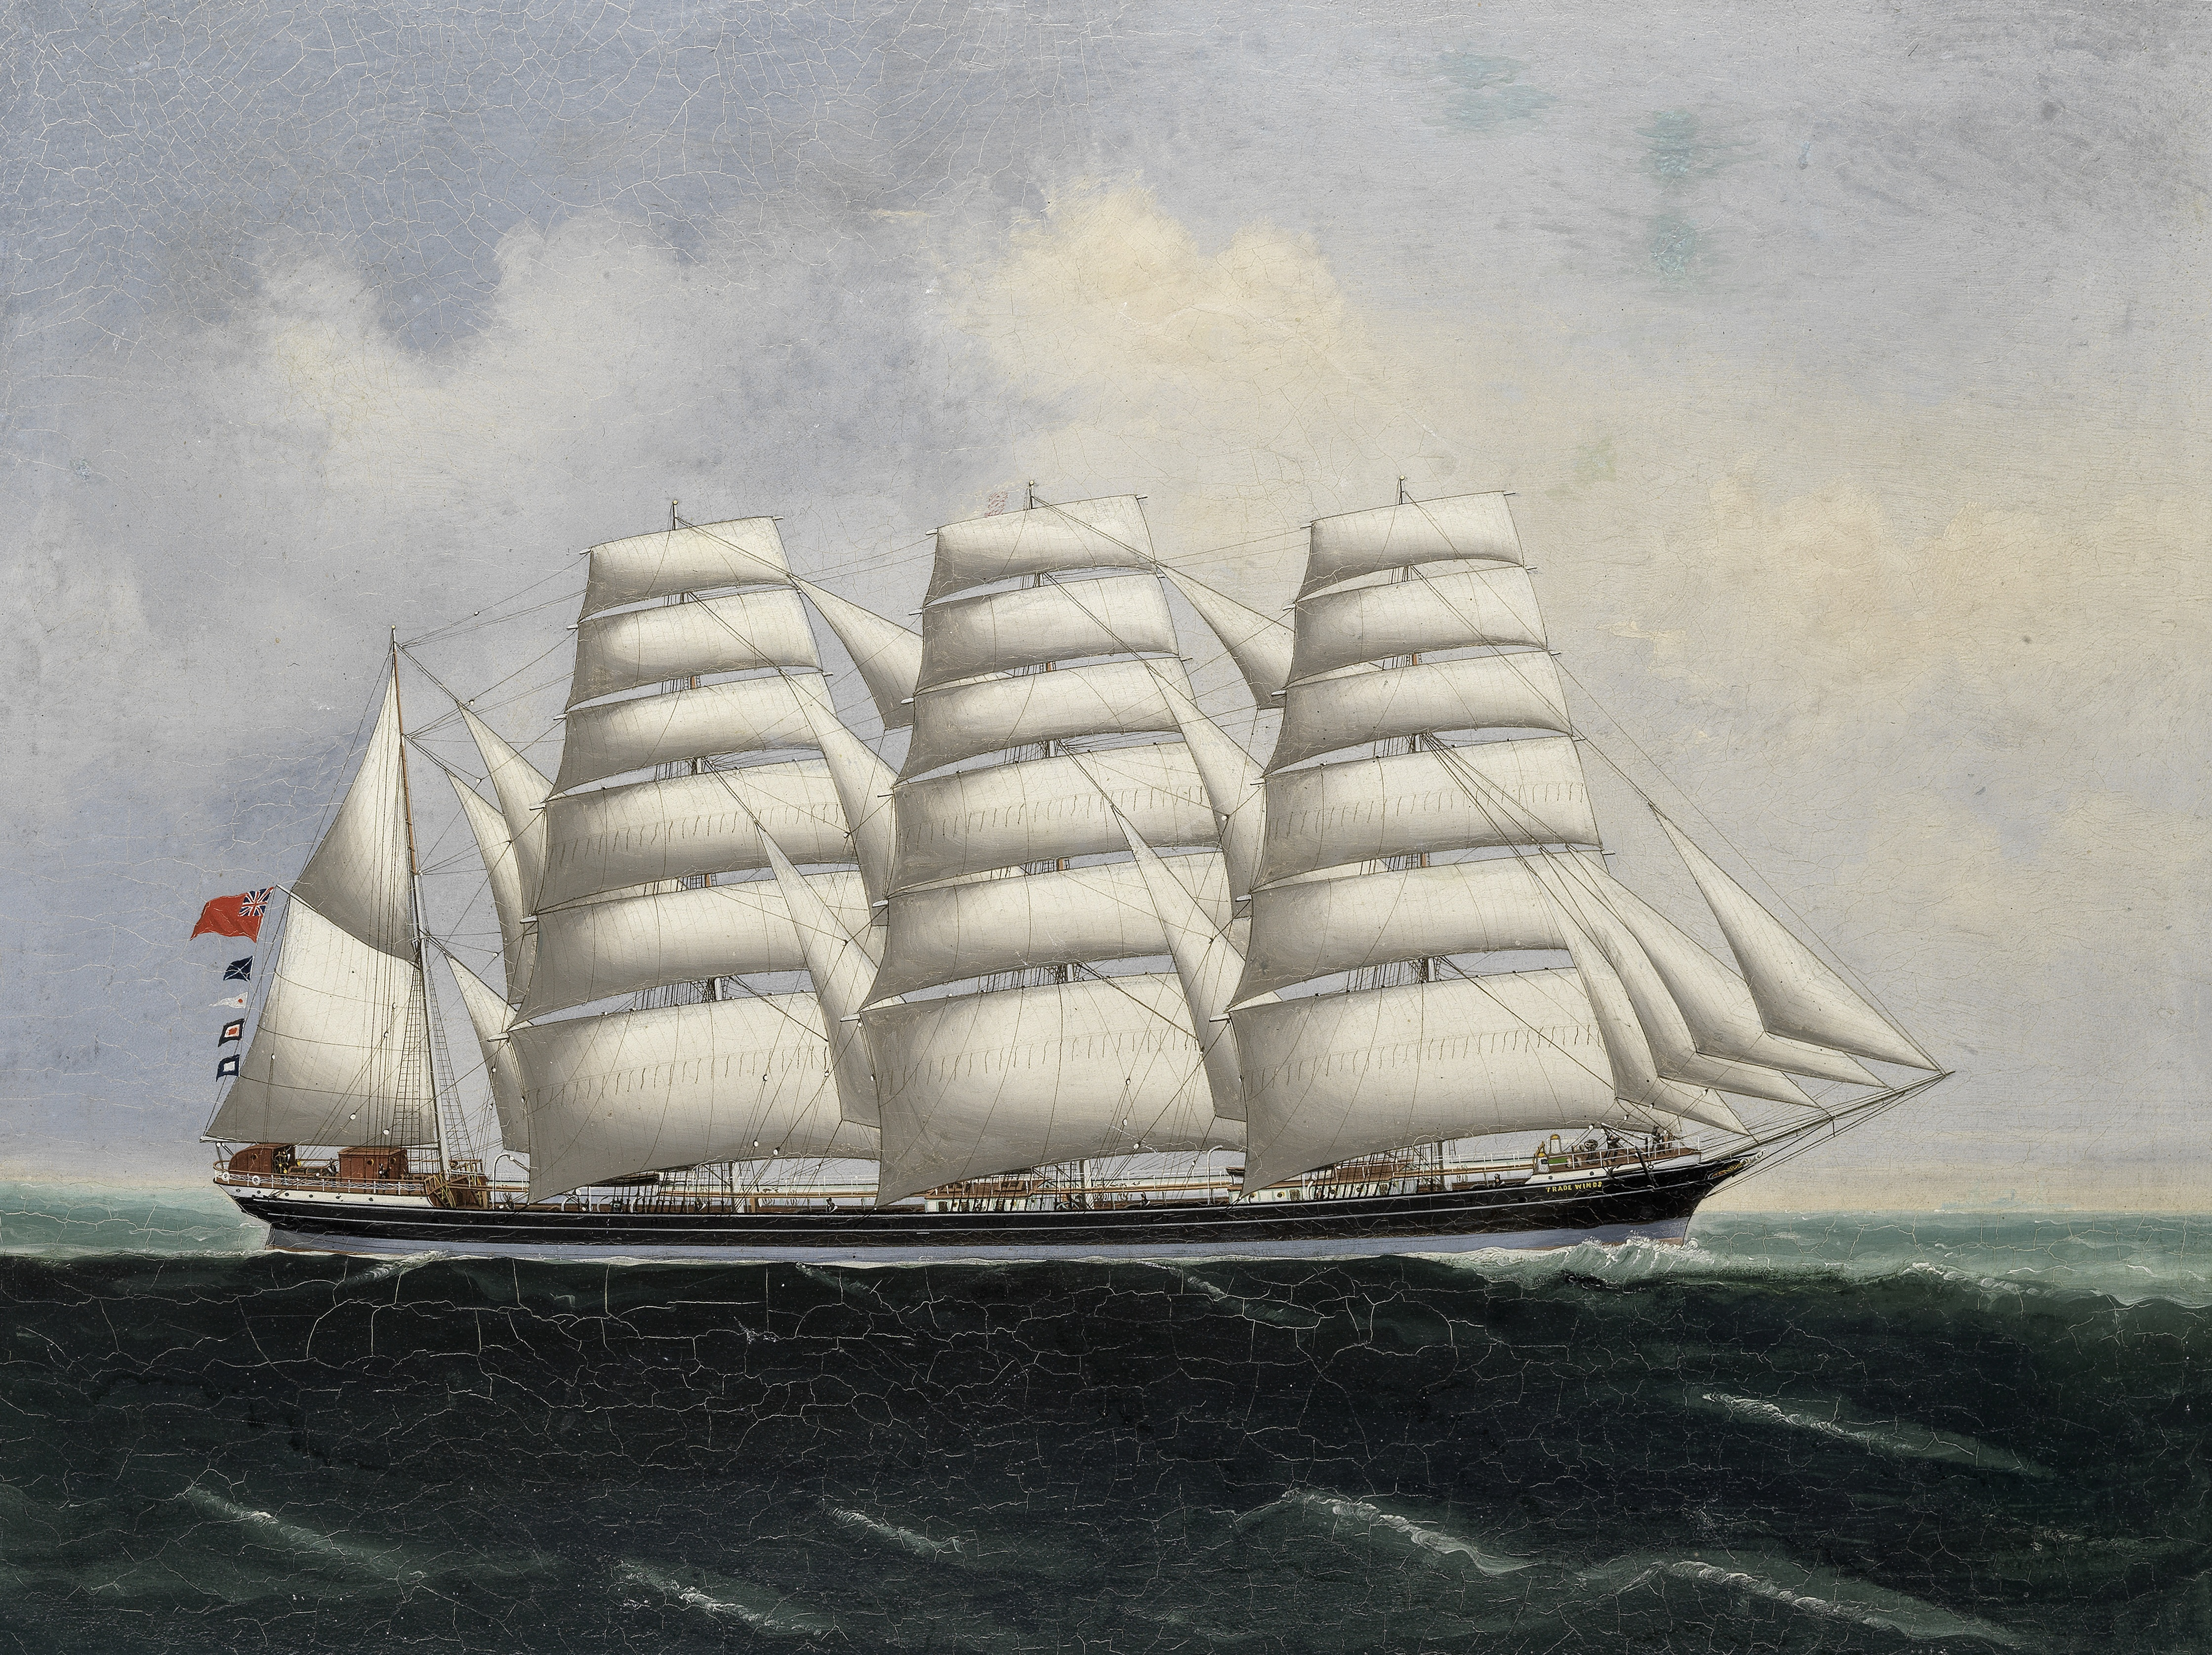 Attributed to Lai Fong (Chinese, active 1870-1910) The four masted barque Trade Winds in full sail